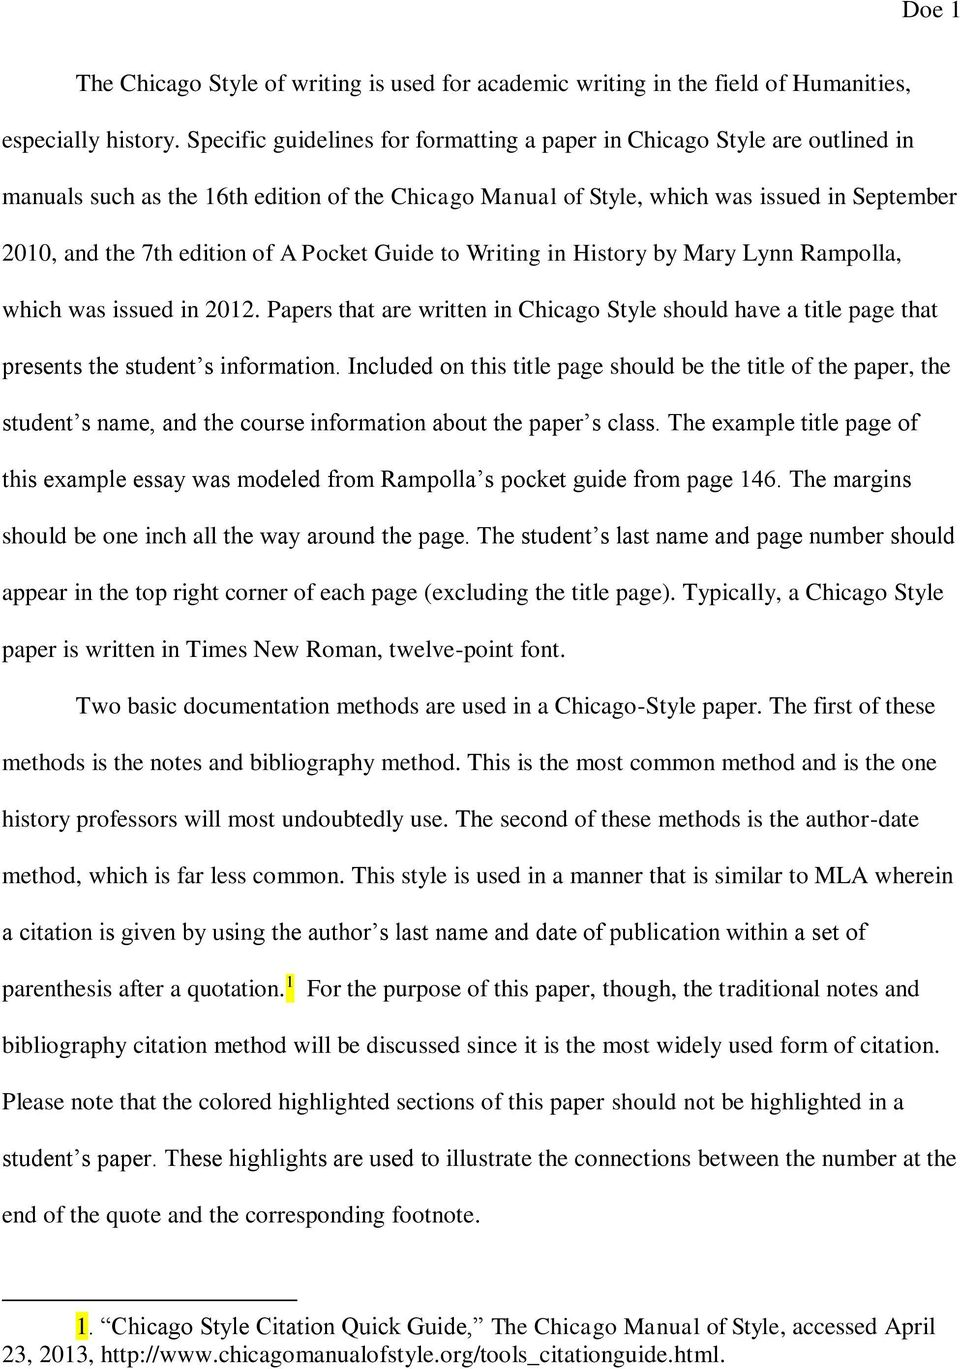 A Pocket Guide to Writing in History by Mary Lynn Rampolla, which was issued in 2012. Papers that are written in Chicago Style should have a title page that presents the student s information.